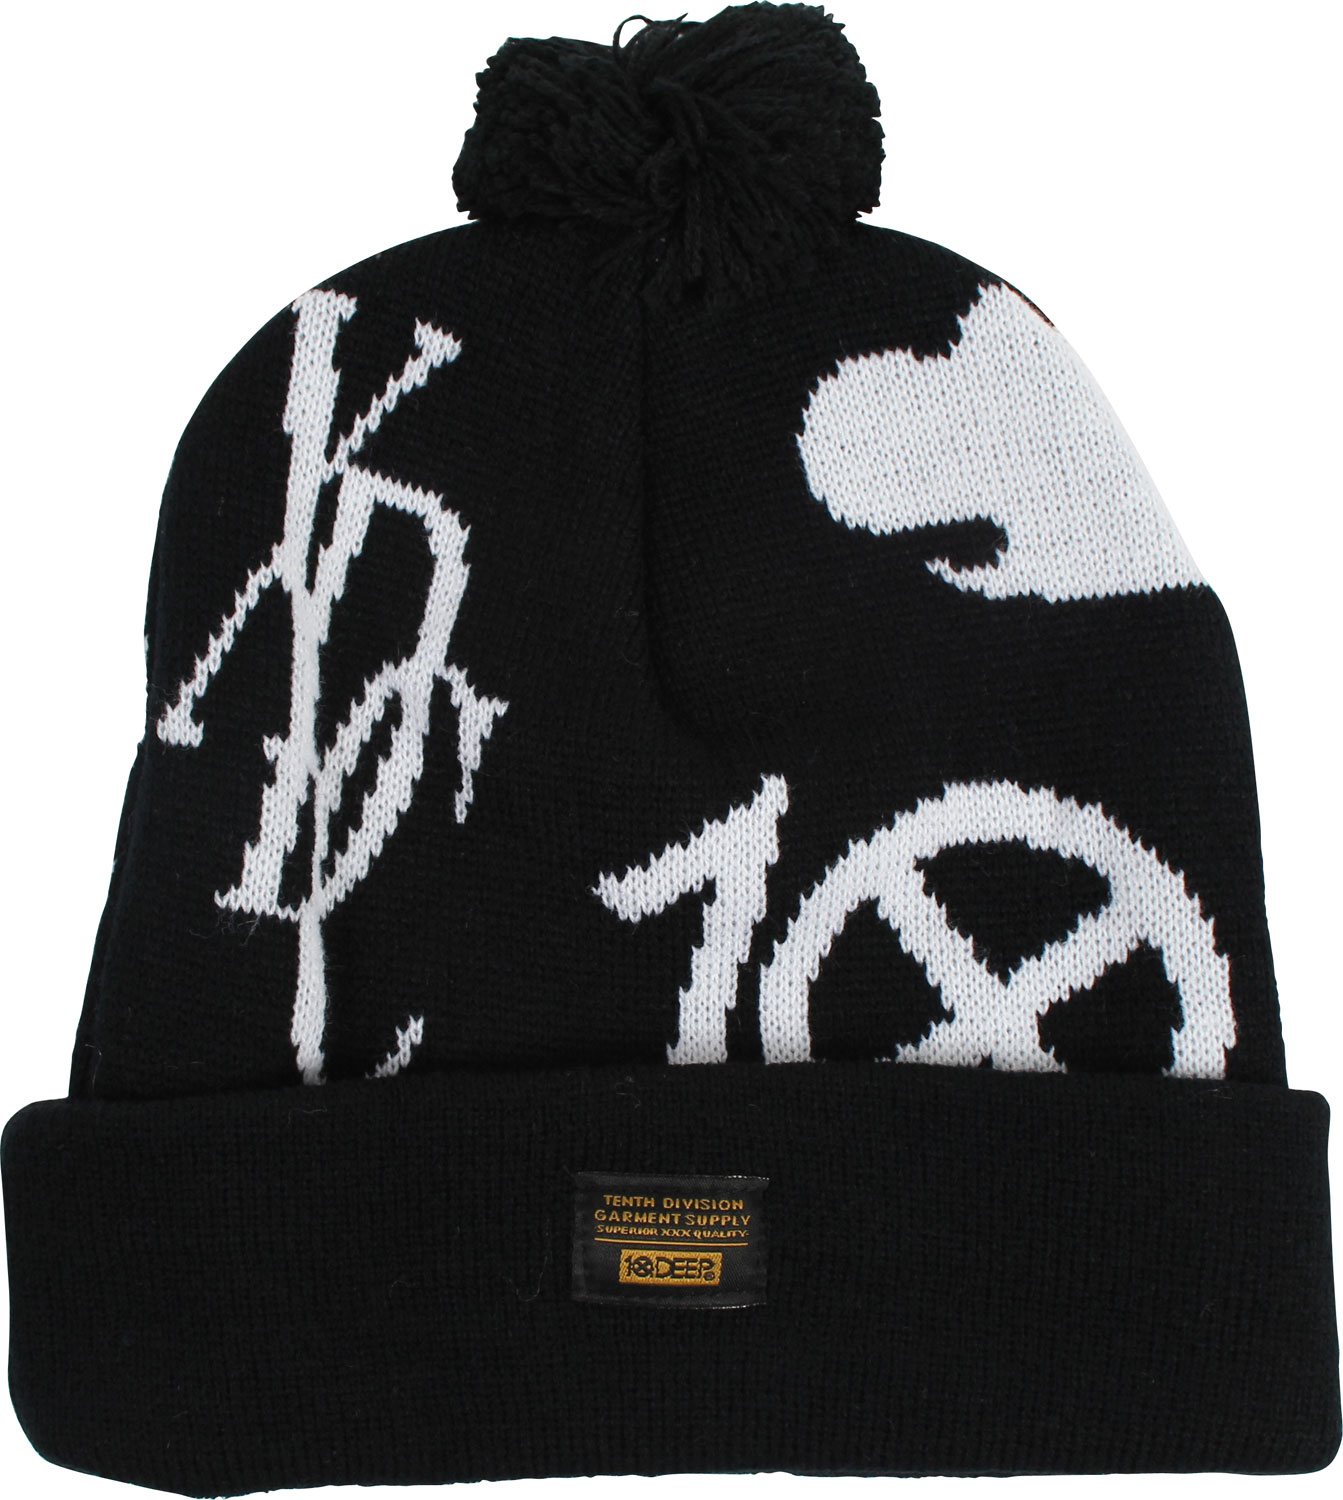 Image of 10 Deep - Full Clip Beanie